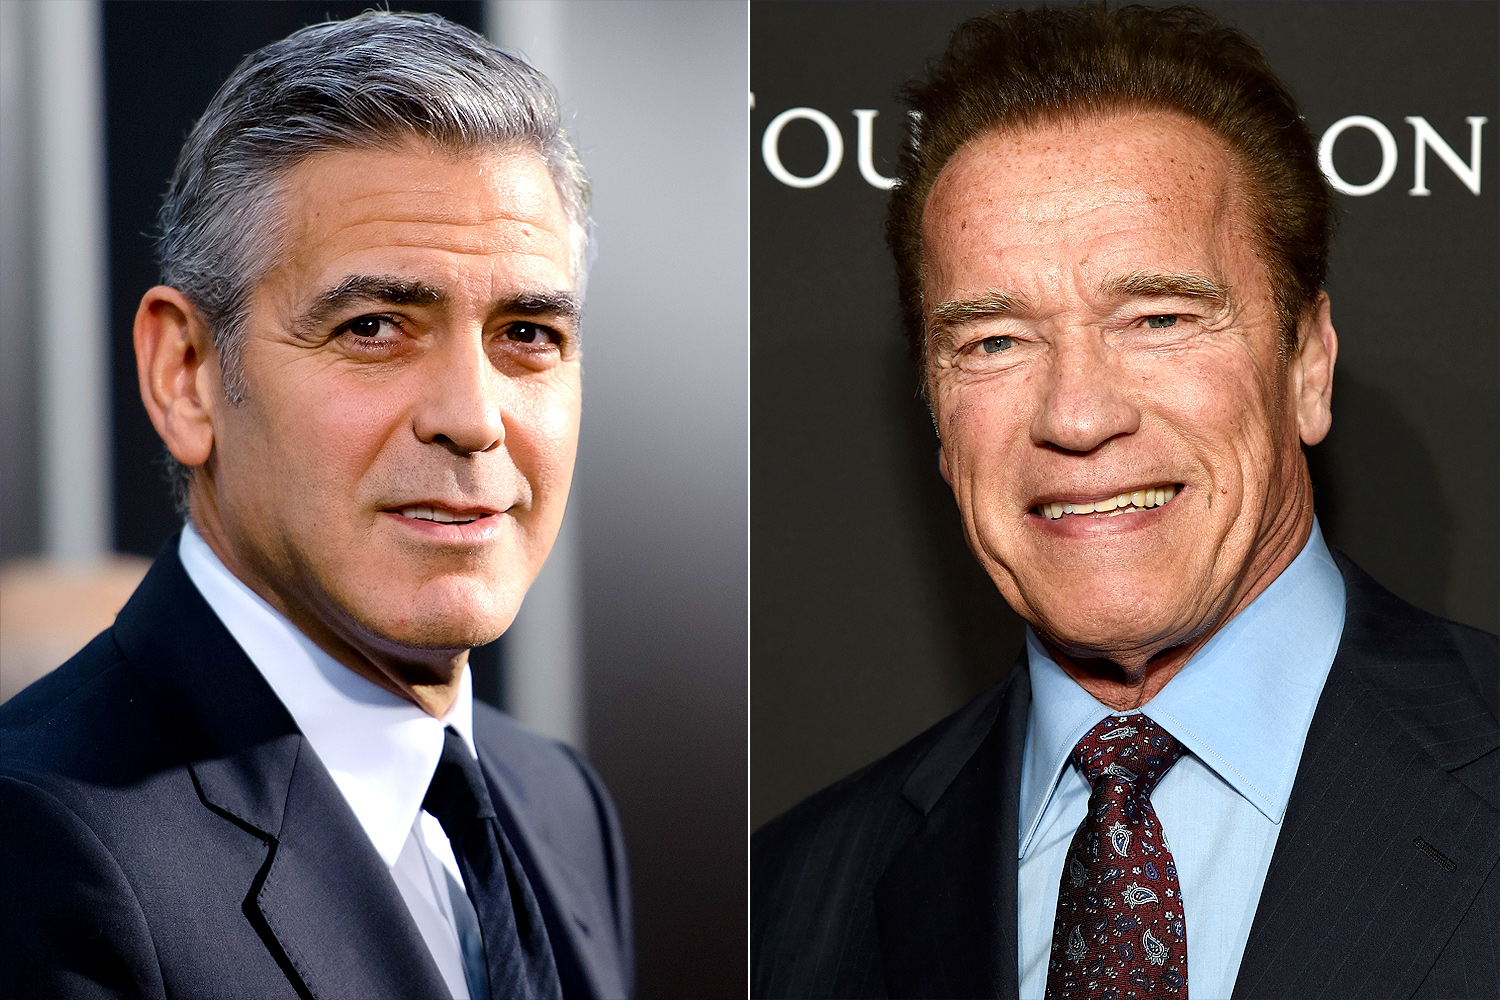 George Clooney and Arnold Schwarzenegger